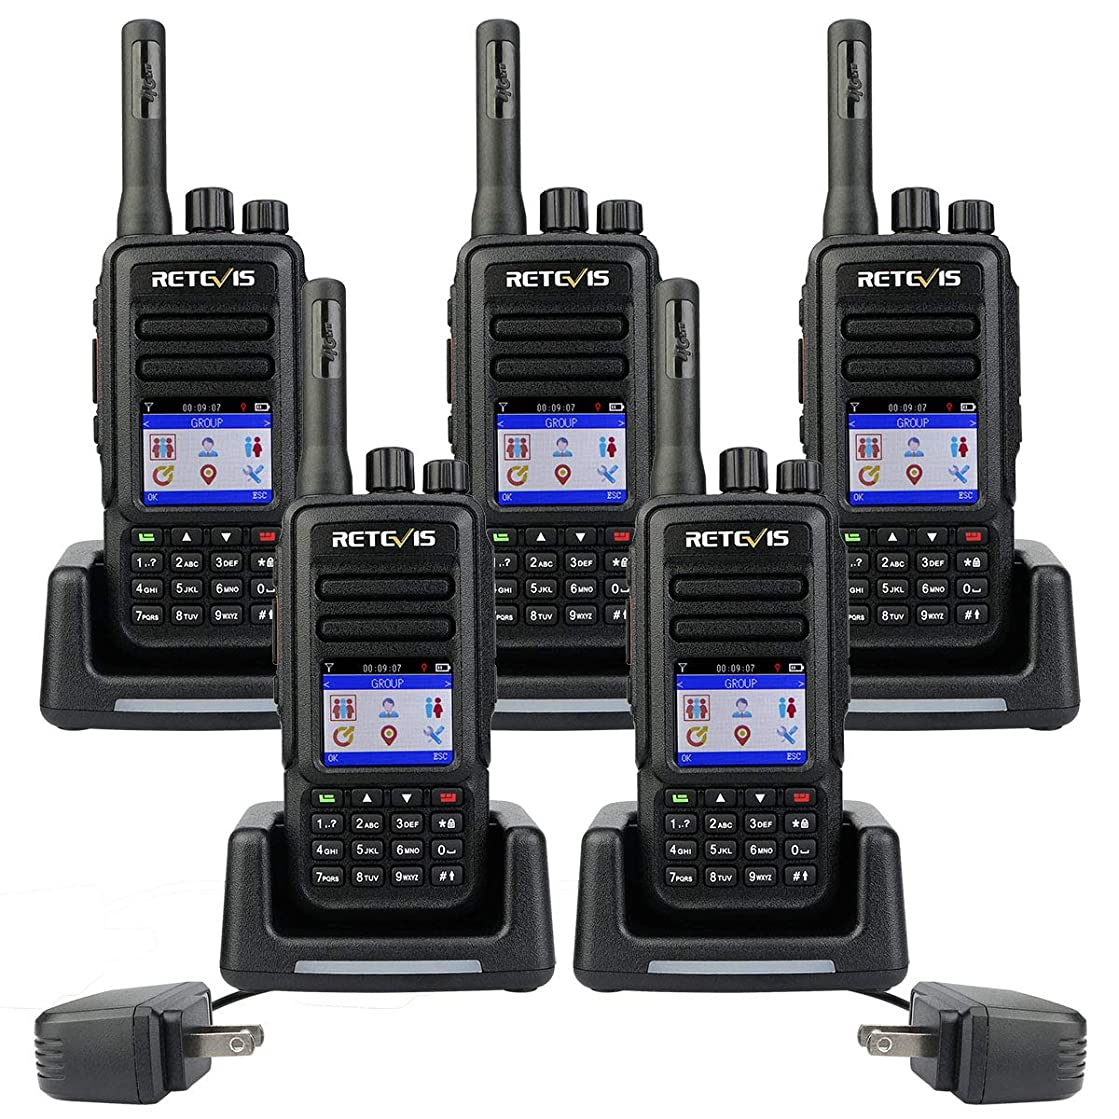 Retevis RT51 4G Walkie-Talkies Network Smart National Coverage Mile Range GPS 4000mAh Rechargeable Battery with SIM Card Two-way Radios ( 5 Pack)